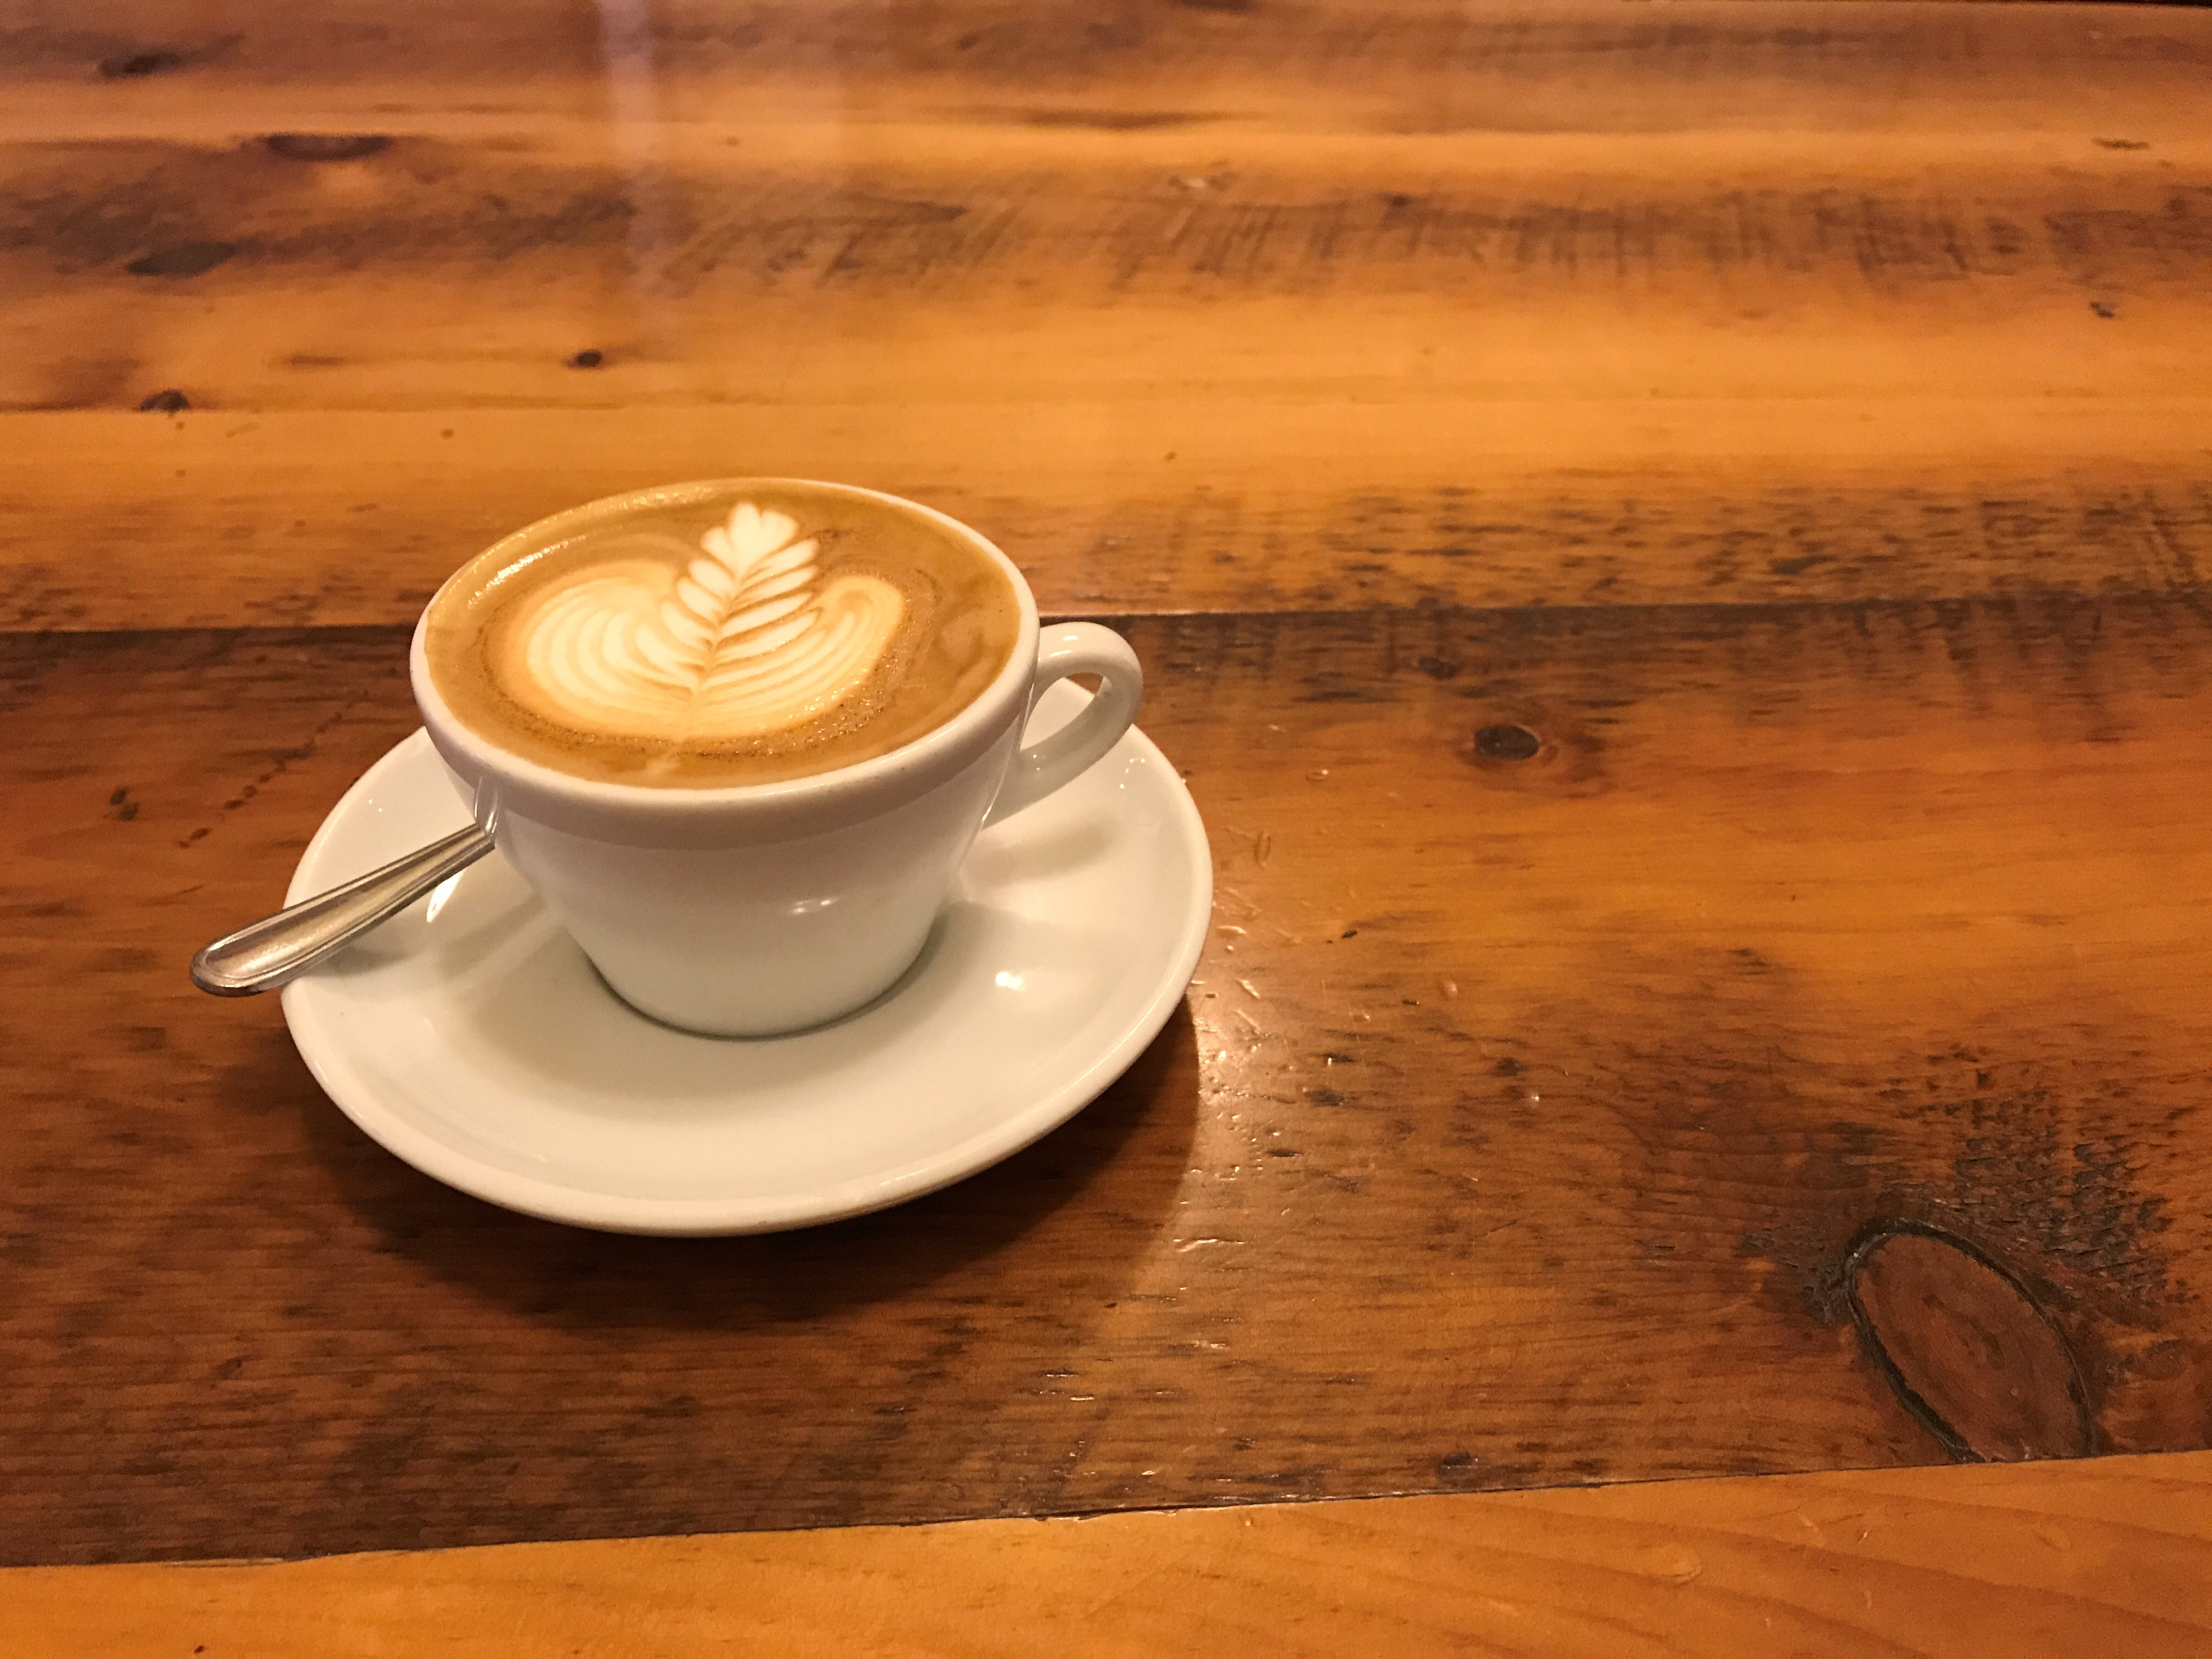 latte in a white cup on a wooden table